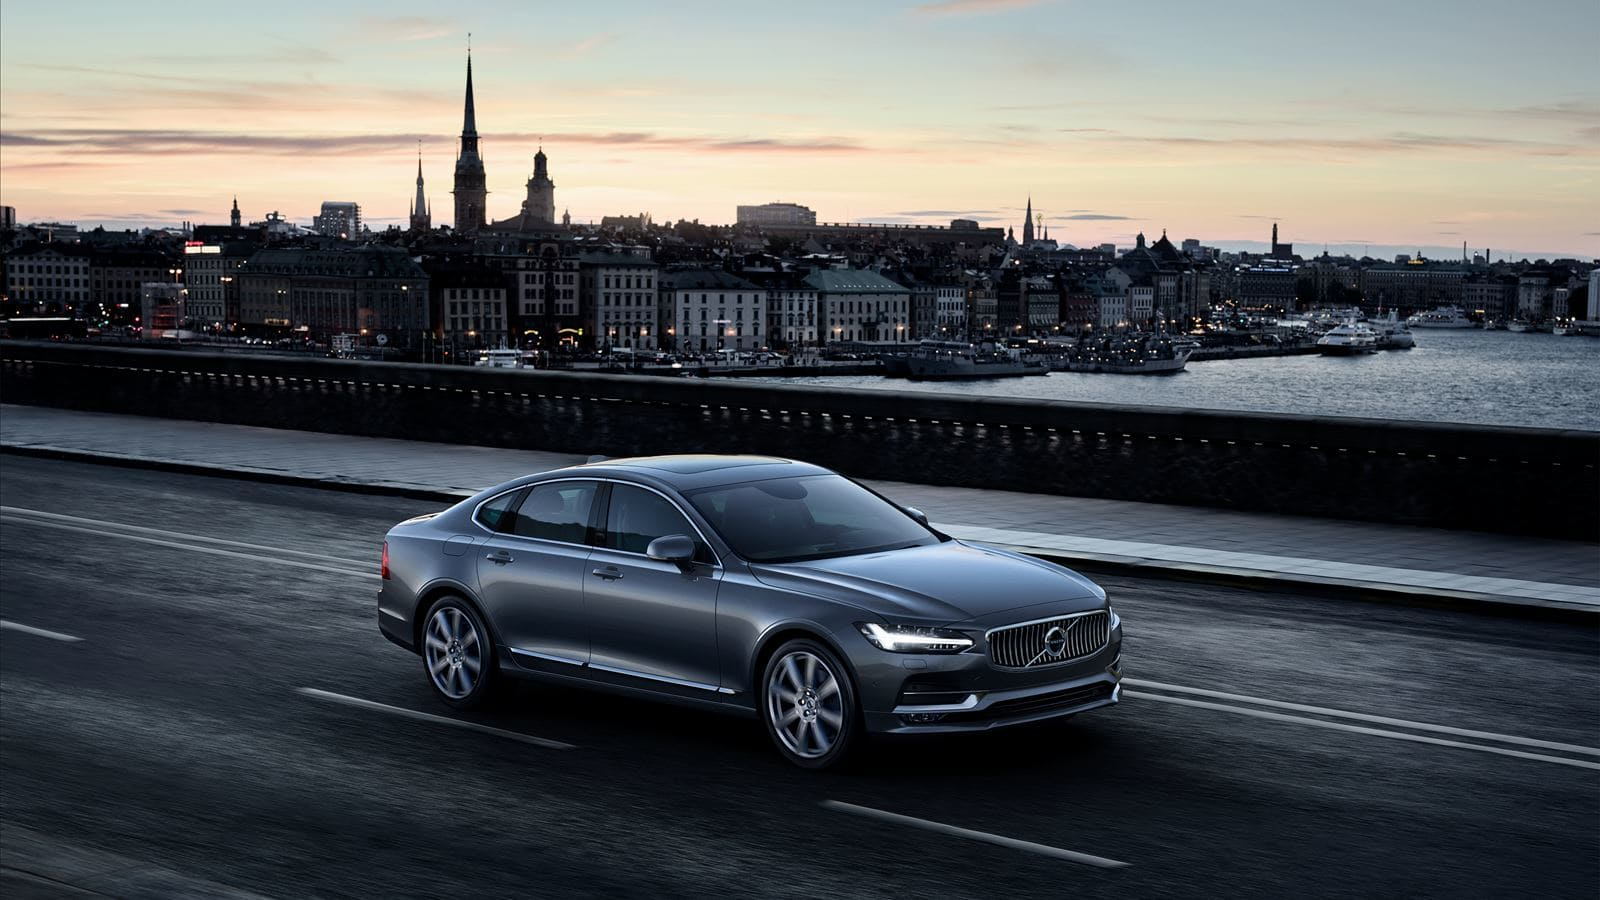 Volvo S90 driving in a city